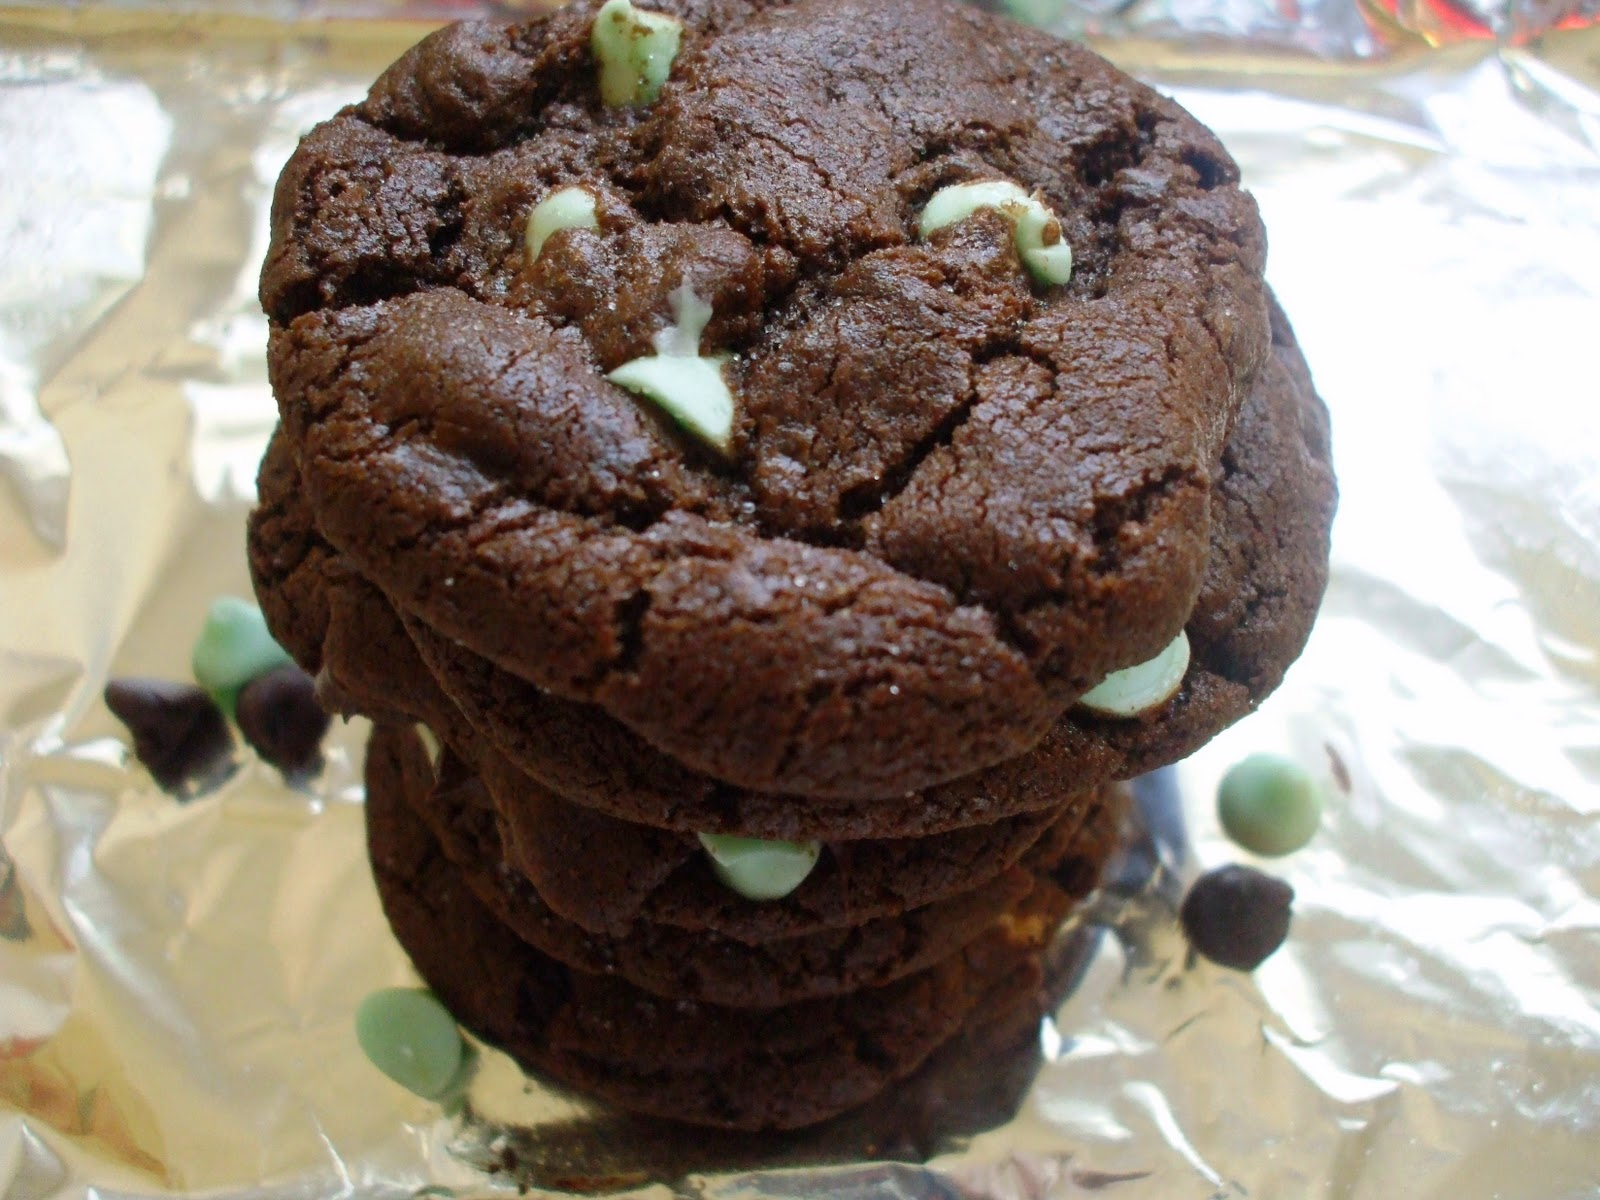 Sinful Sundays: Mint Chocolate Chip Cookies